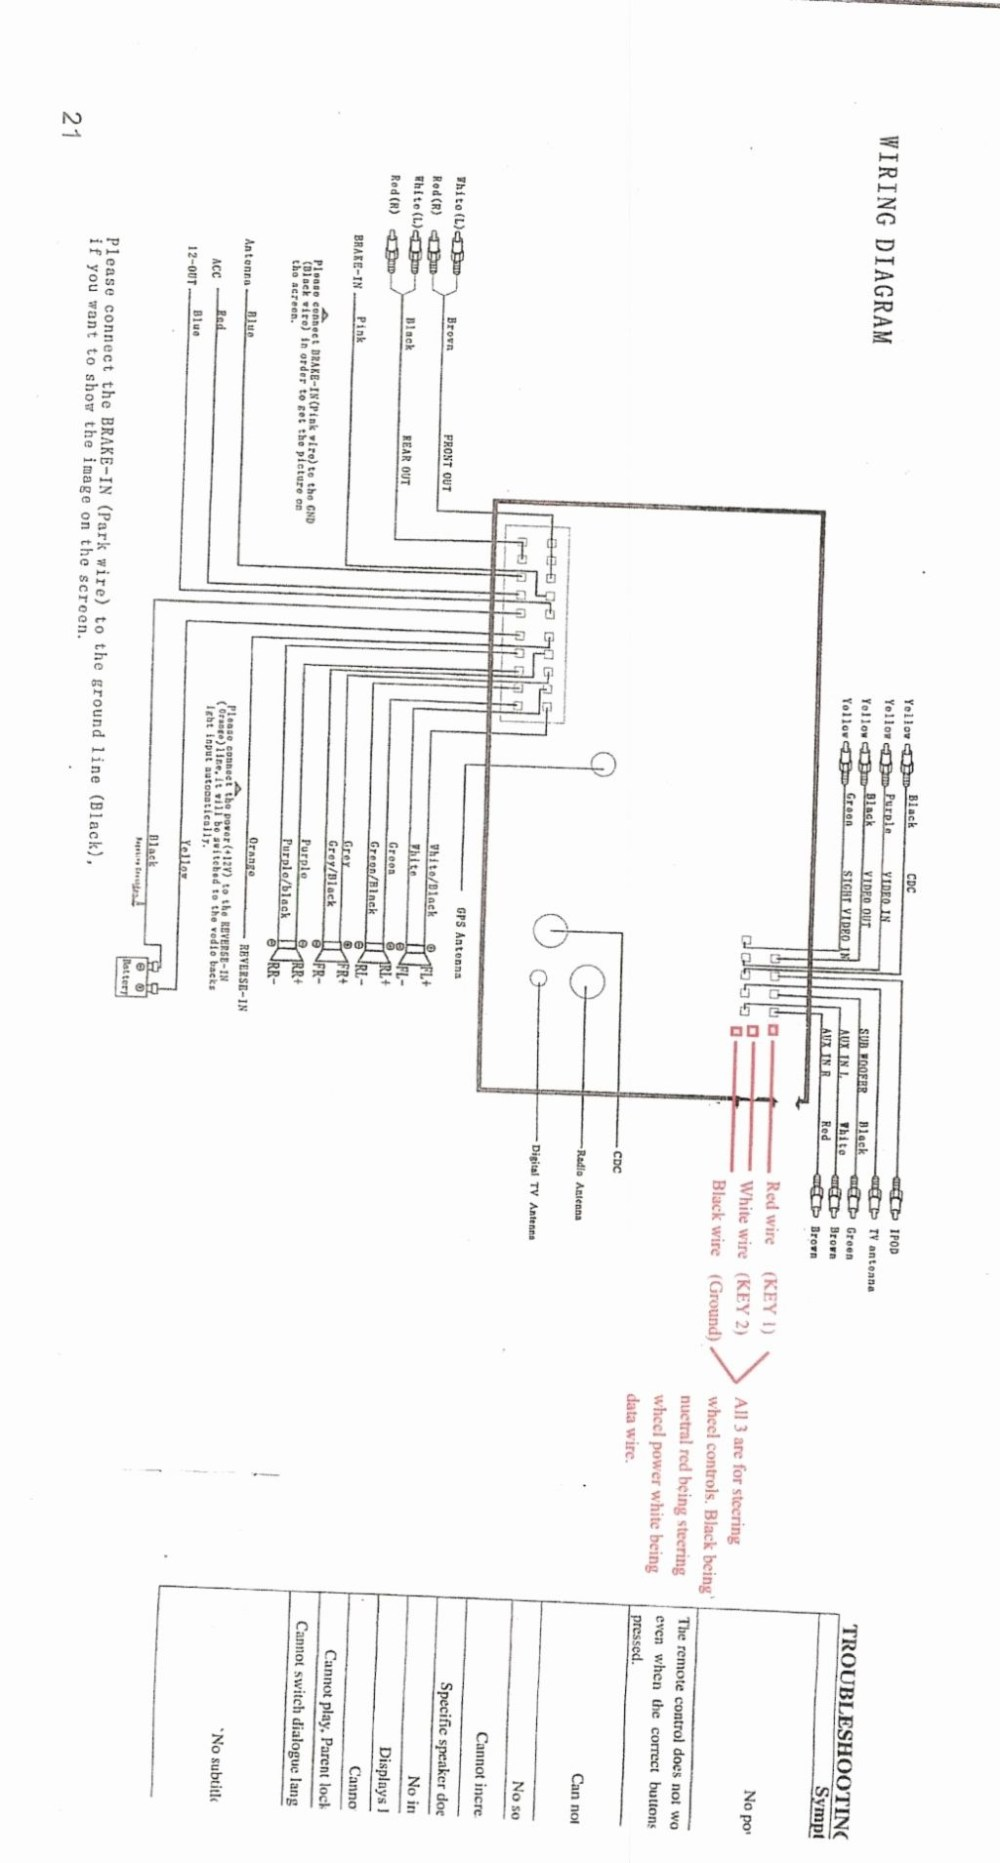 medium resolution of axxess steering wheel control interface wiring diagram axxess gmos 04 wiring diagram beautiful awesome gmos 01 wiring diagram s best for wiring 11o jpg